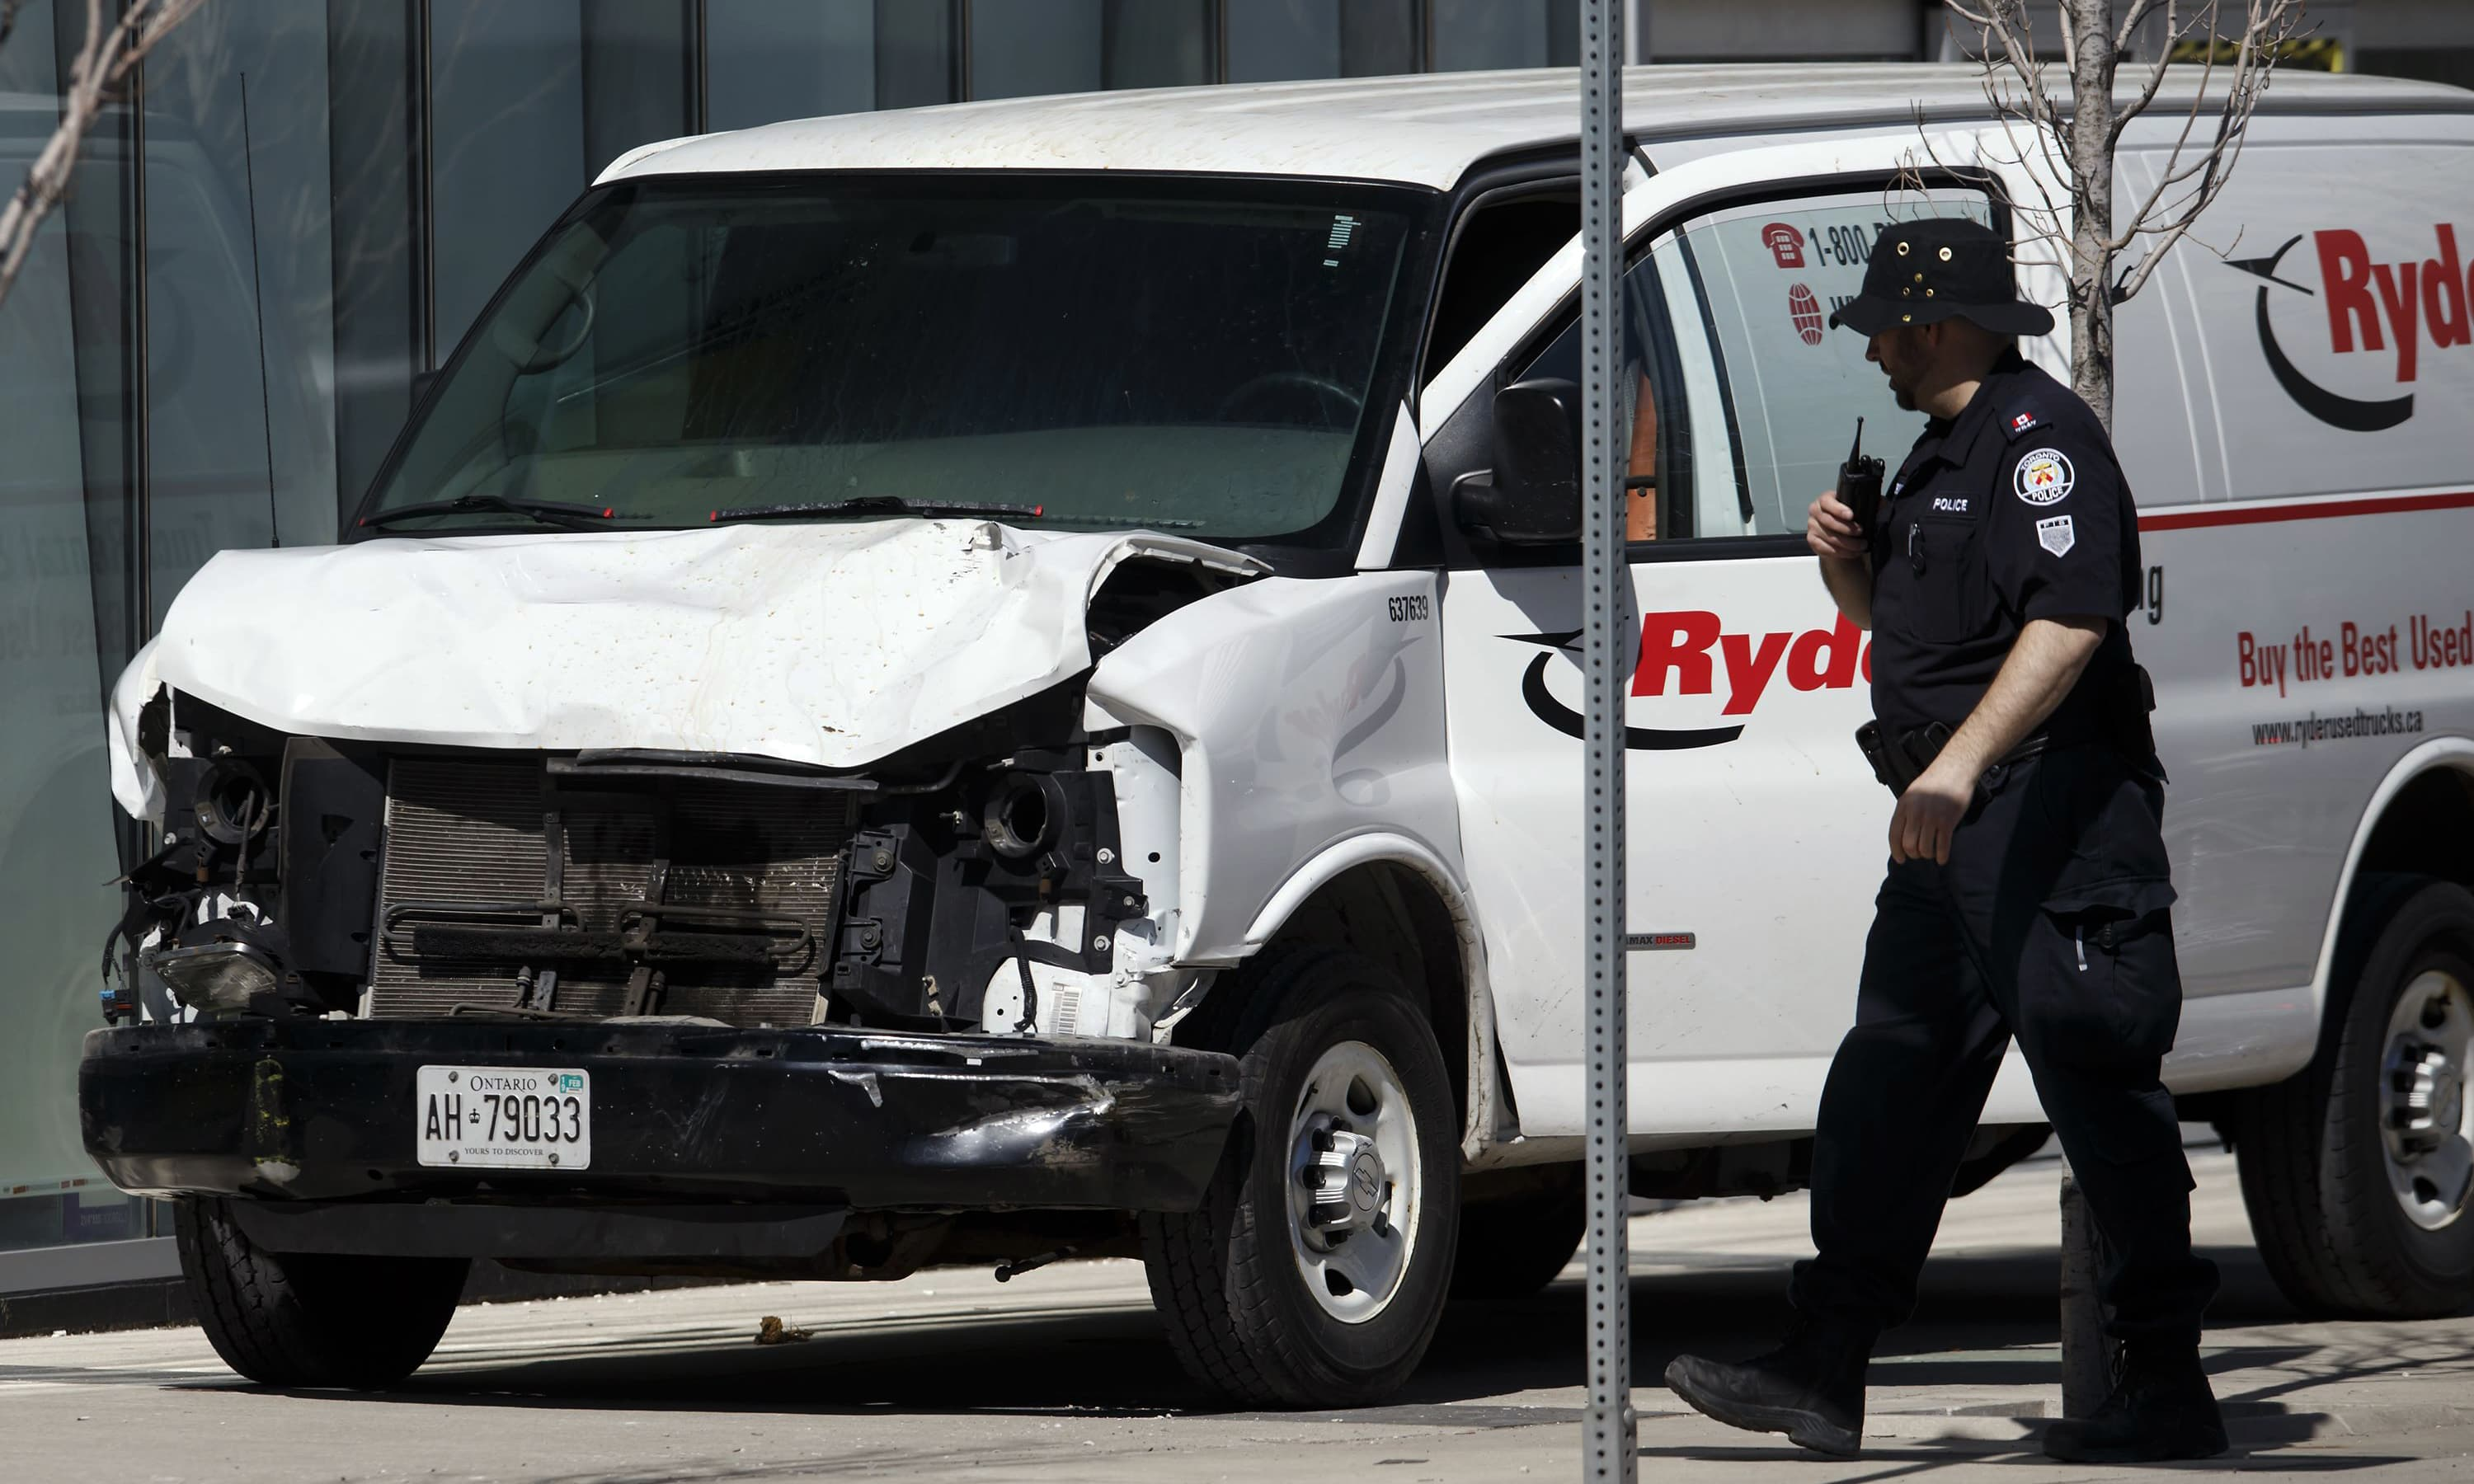 Police inspect a van involved in a collision at Yonge St. and Finch Ave. in Toronto. —AFP